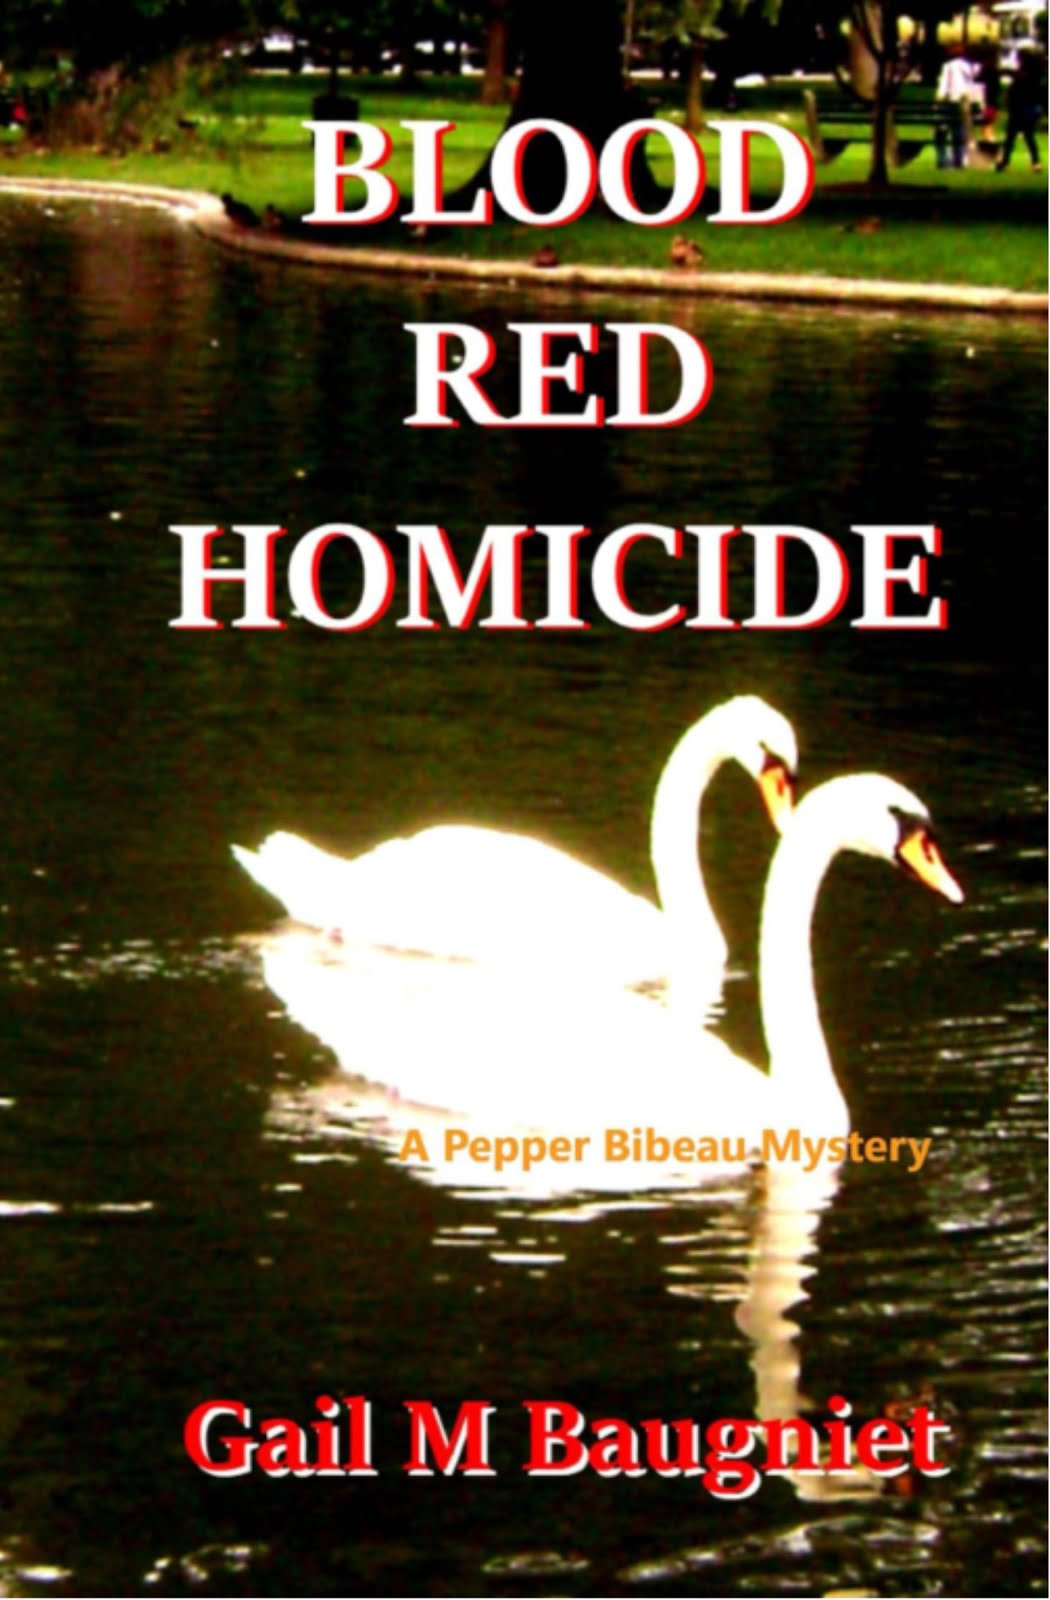 *** RED HOT MYSTERY ***  SET IN A SWINGING TOWN 99c ebook March 14-20